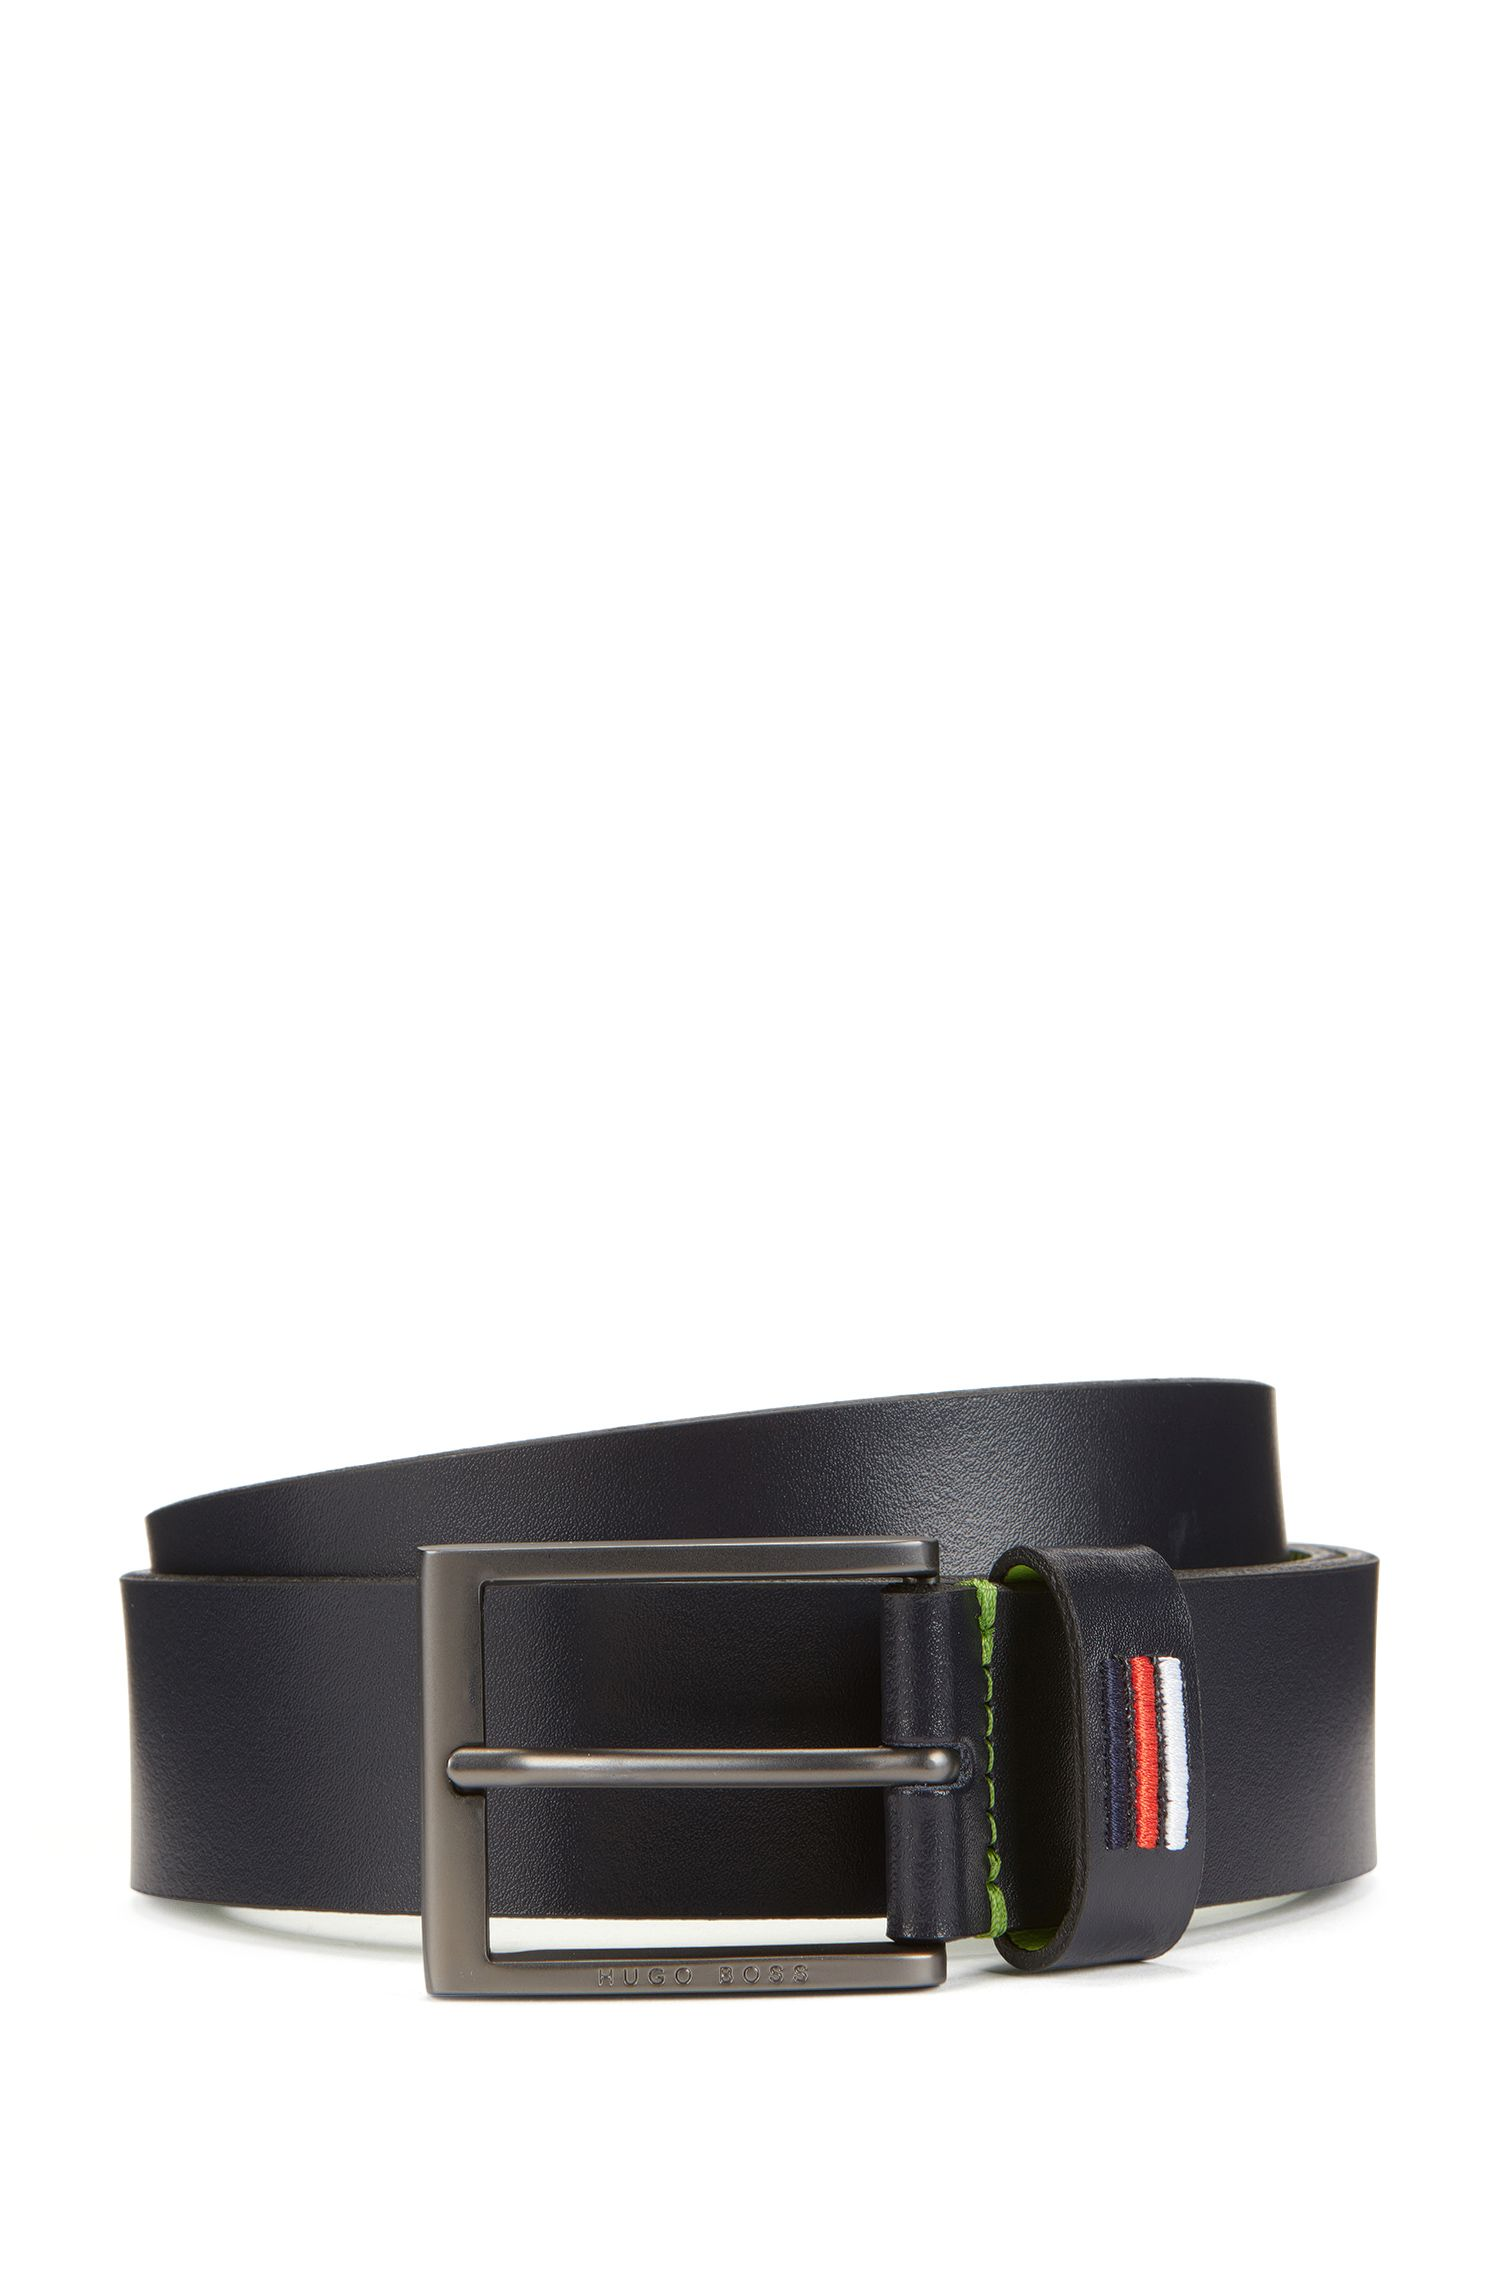 Smooth leather belt with national flag stitching